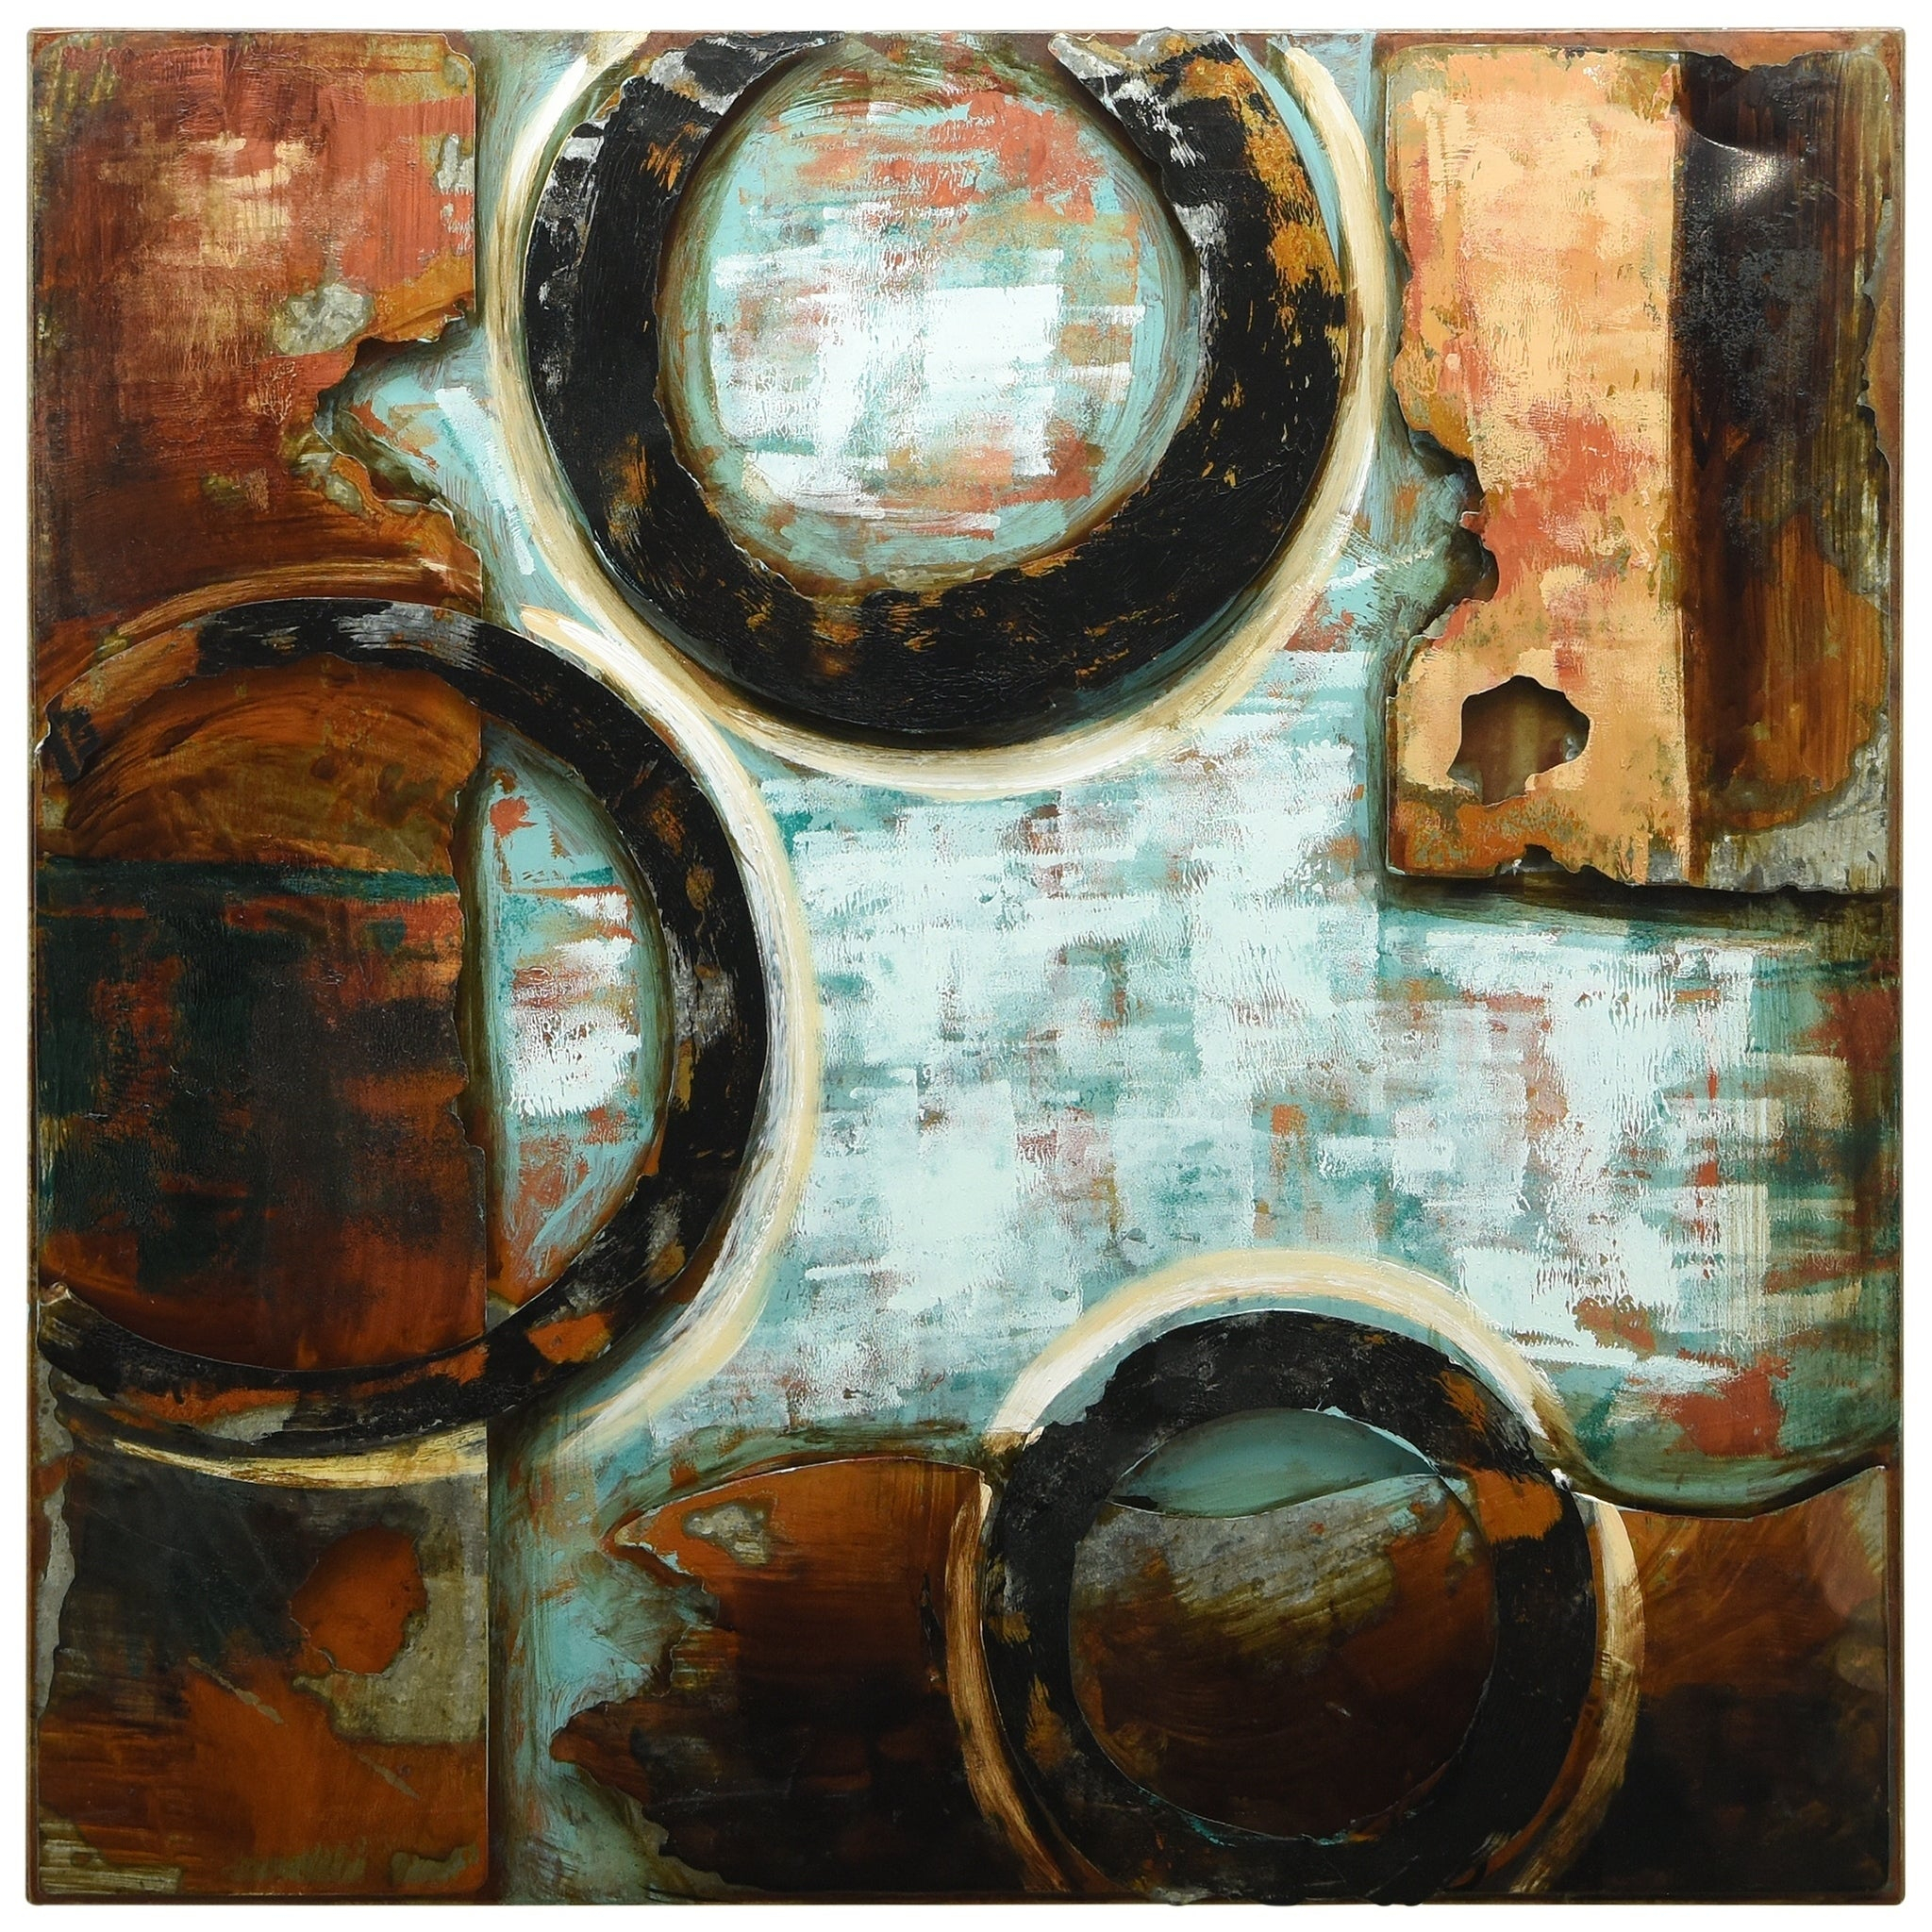 """Revolutions 2"""" Mixed Media Iron Hand Painted Dimensional Wall Décor Regarding Most Current Mixed Media Iron Hand Painted Dimensional Wall Decor (View 5 of 20)"""